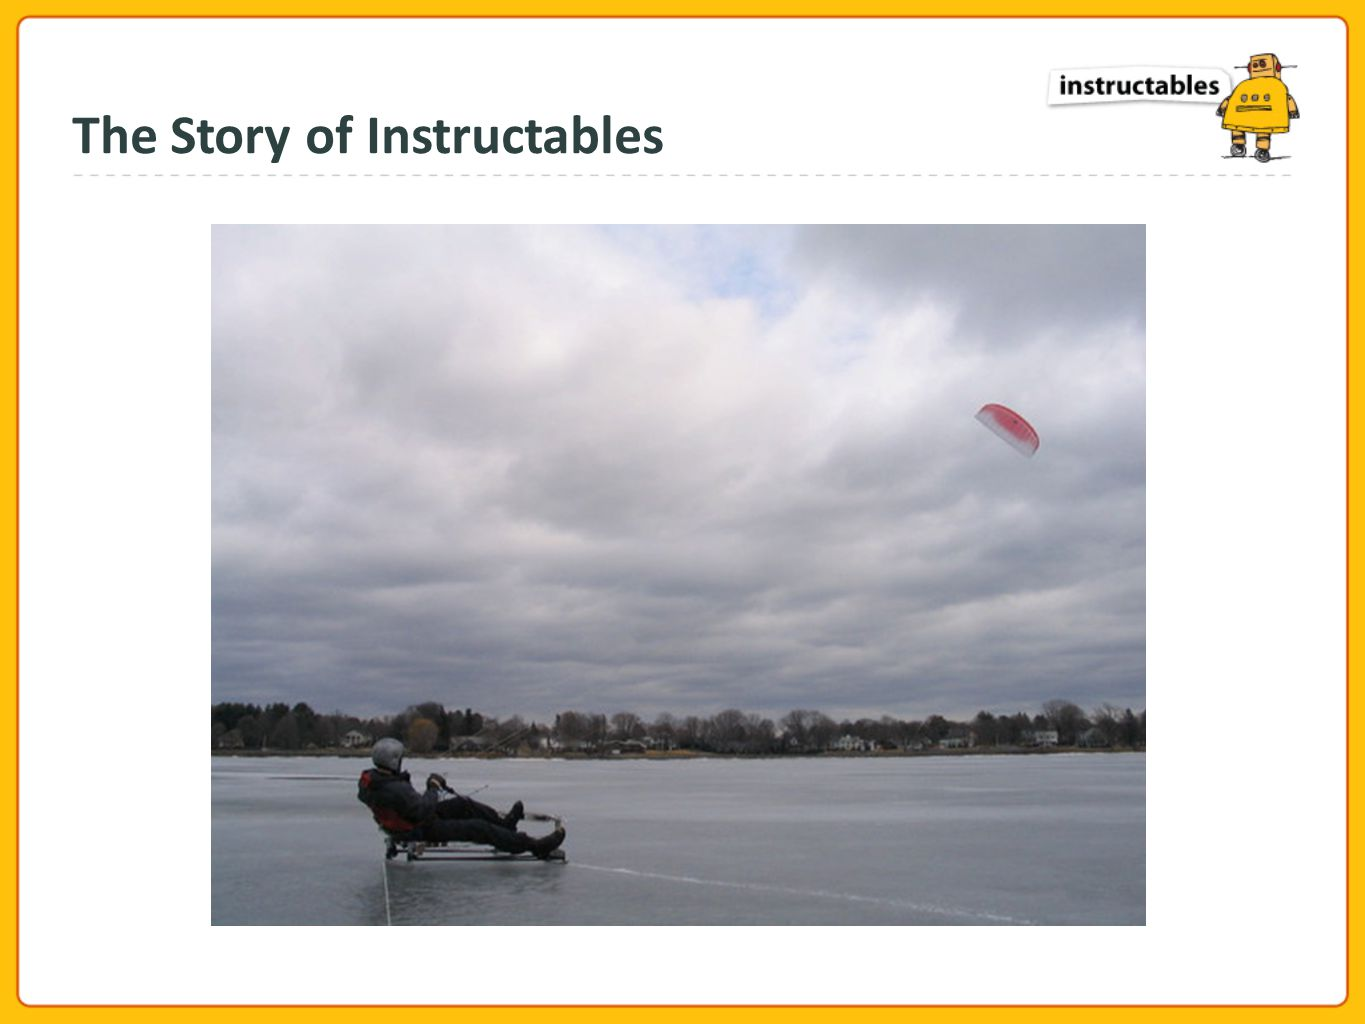 The Story of Instructables